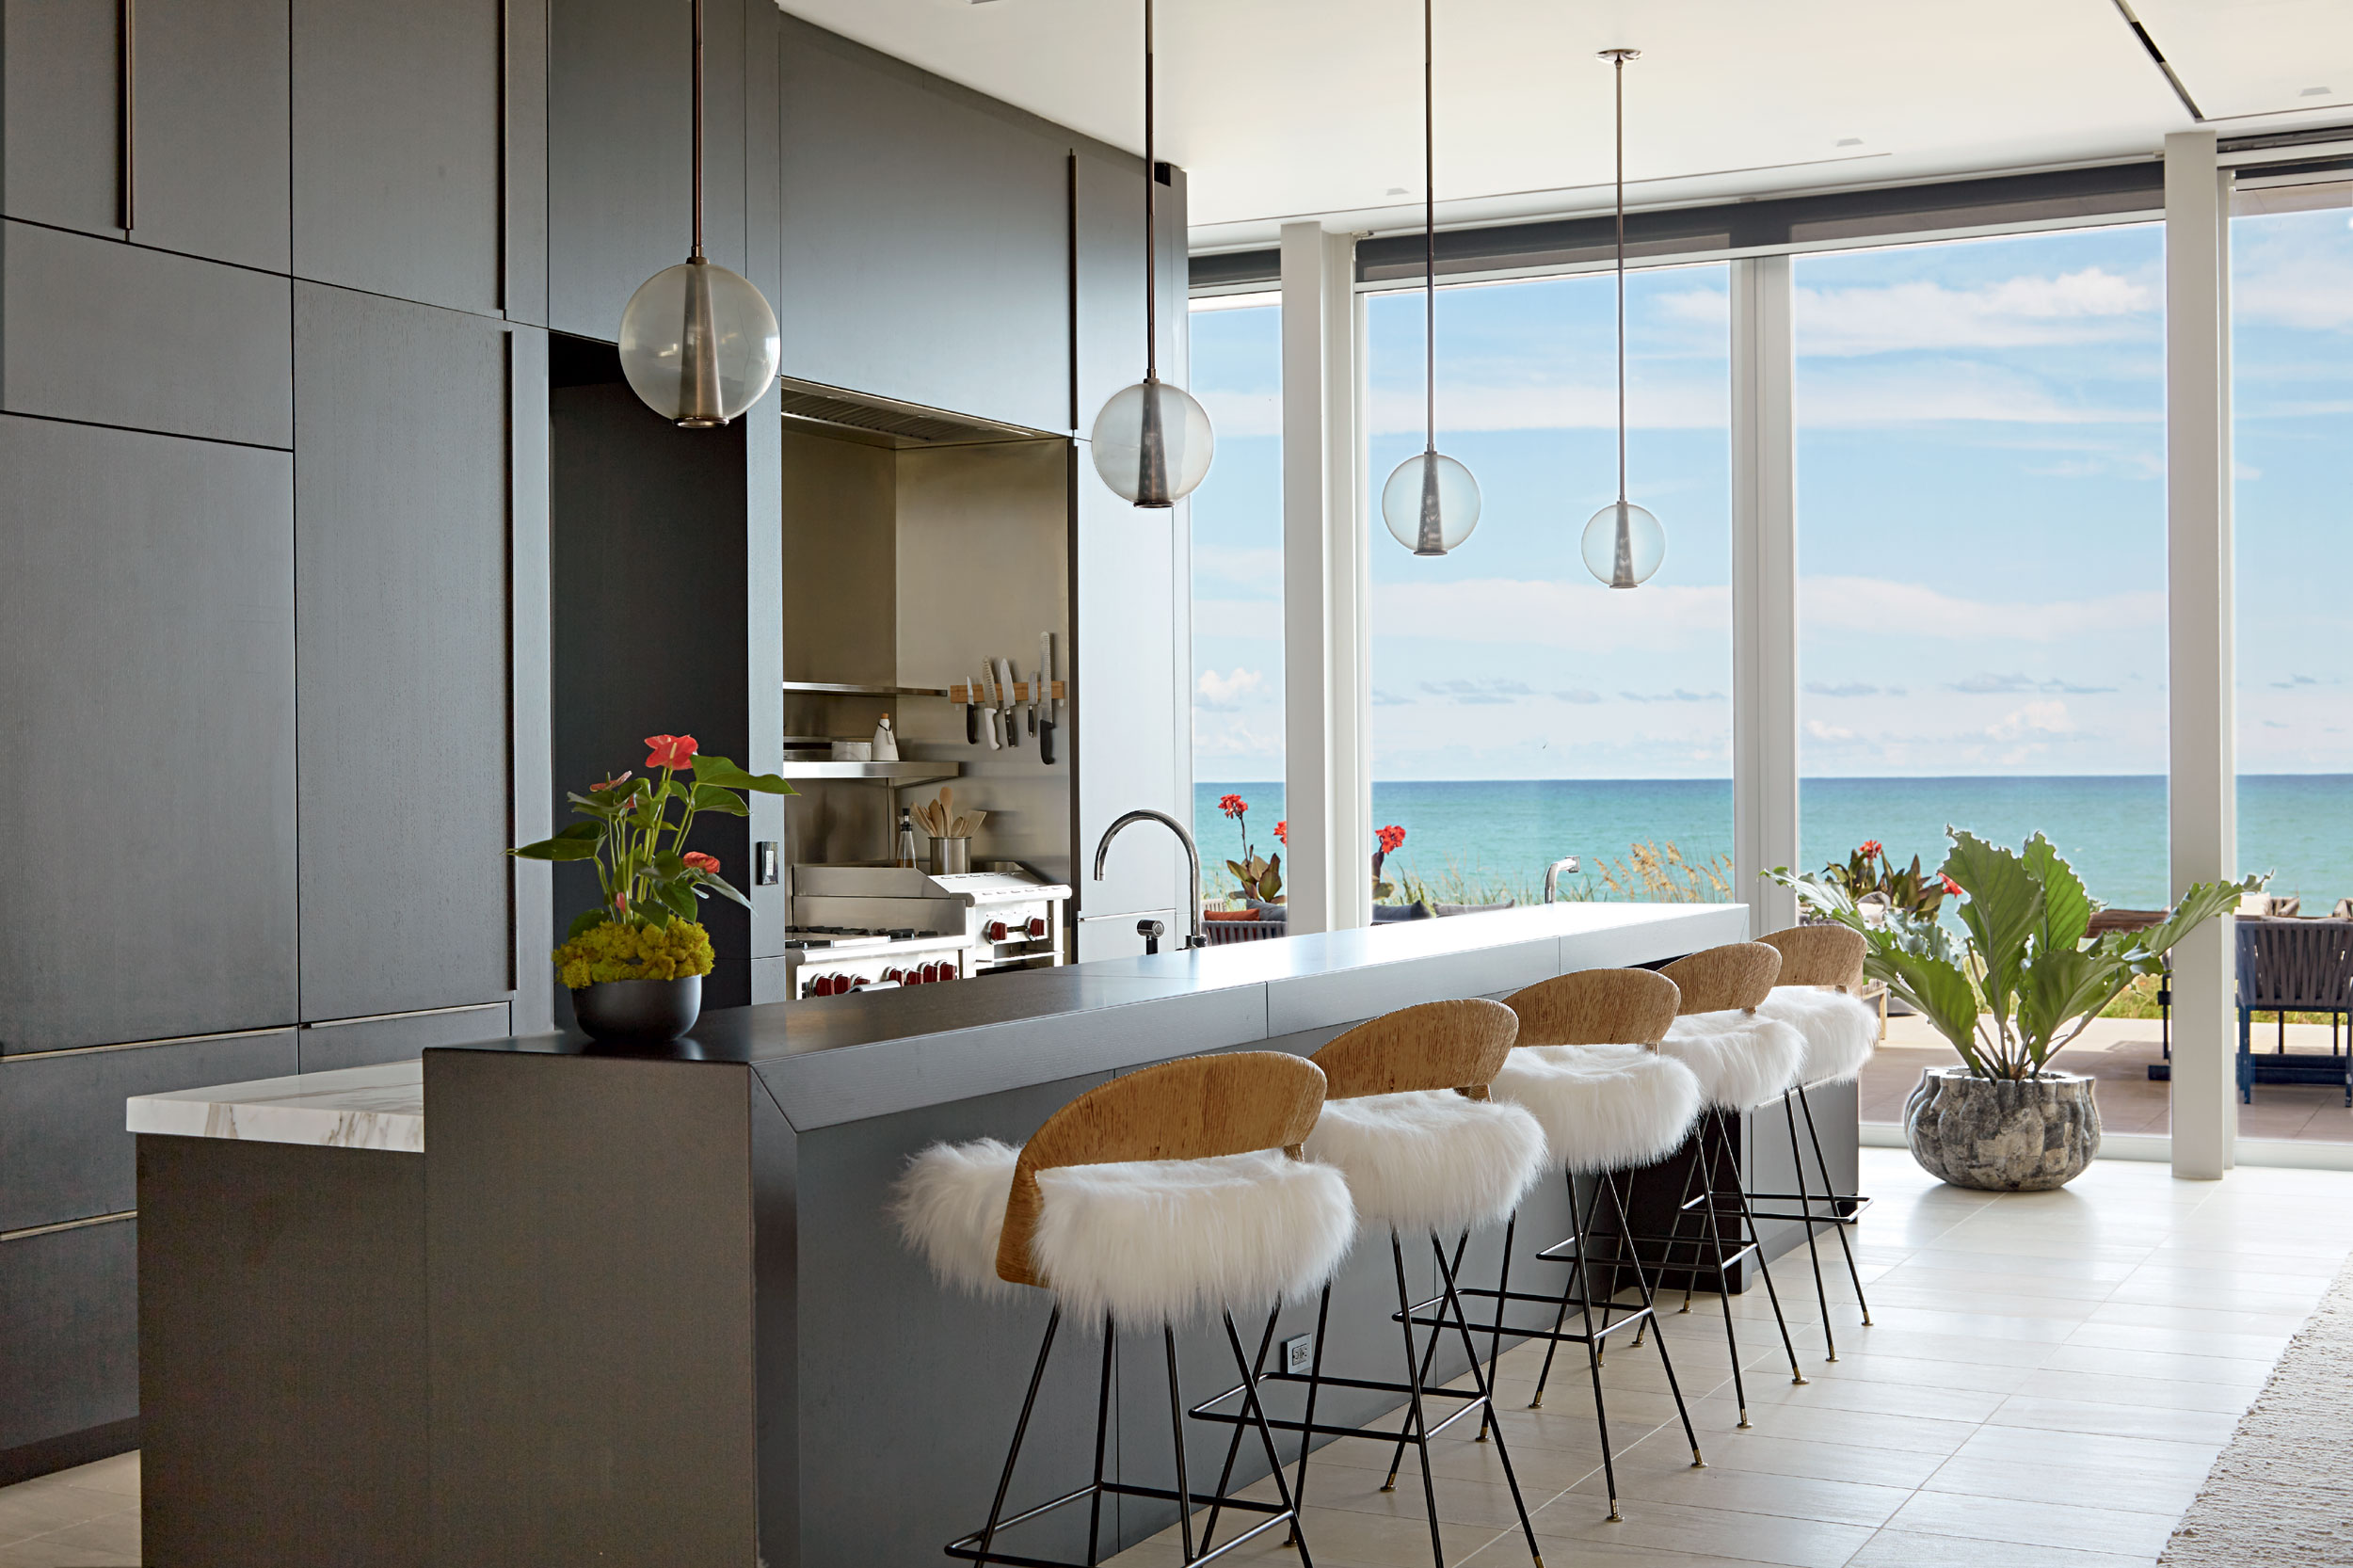 The spacious kitchen is a fully edged retreat in itself, with a breakfast island, relaxed dining area—as an alternative to the formal dining room—and free-flowing circulation to the outside space.